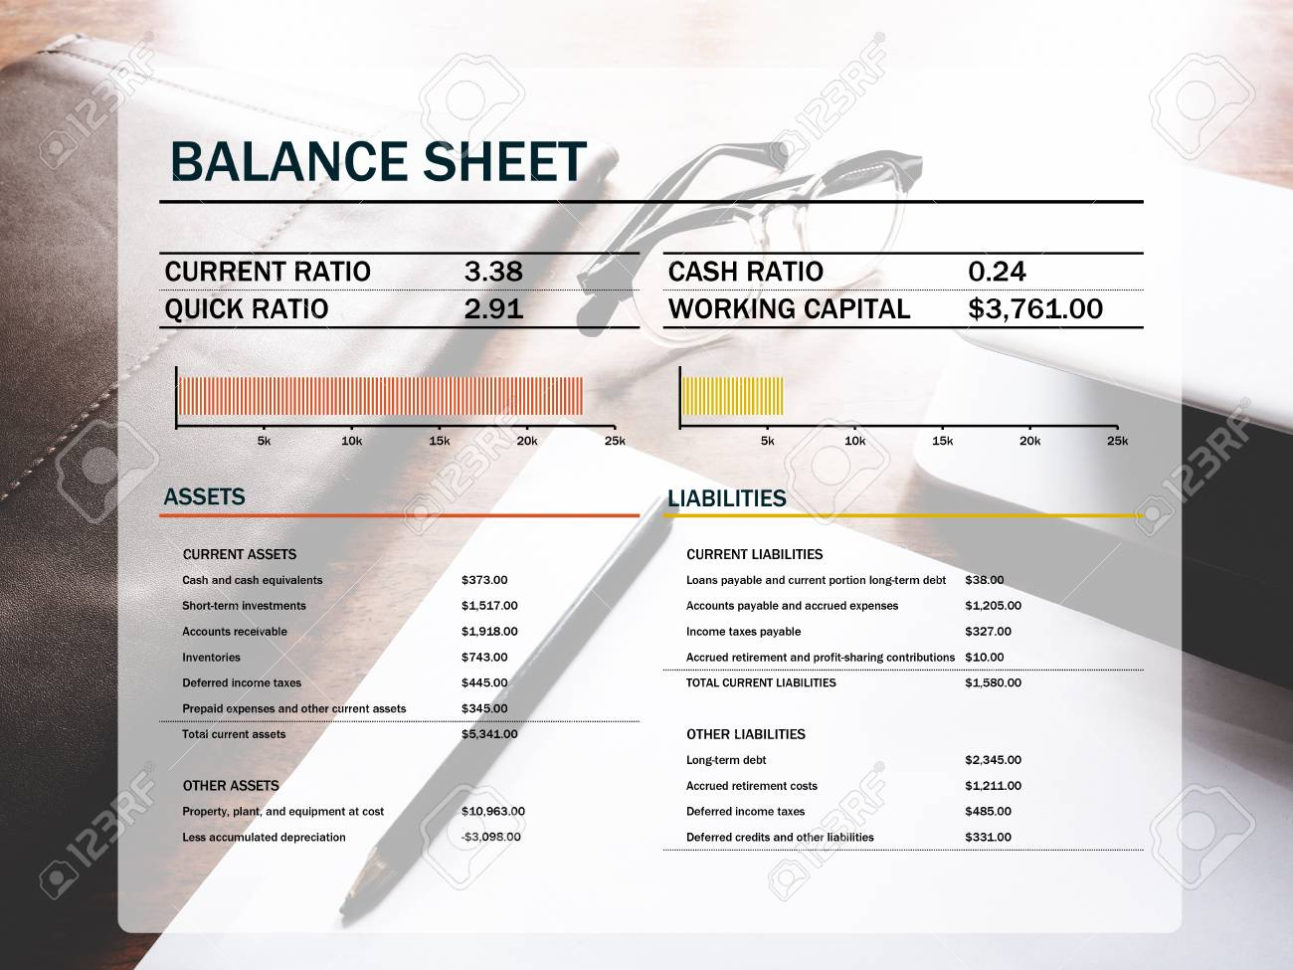 Financial Management Spreadsheet Within The Picture Of Balance Sheet On Workspace Background. Financial